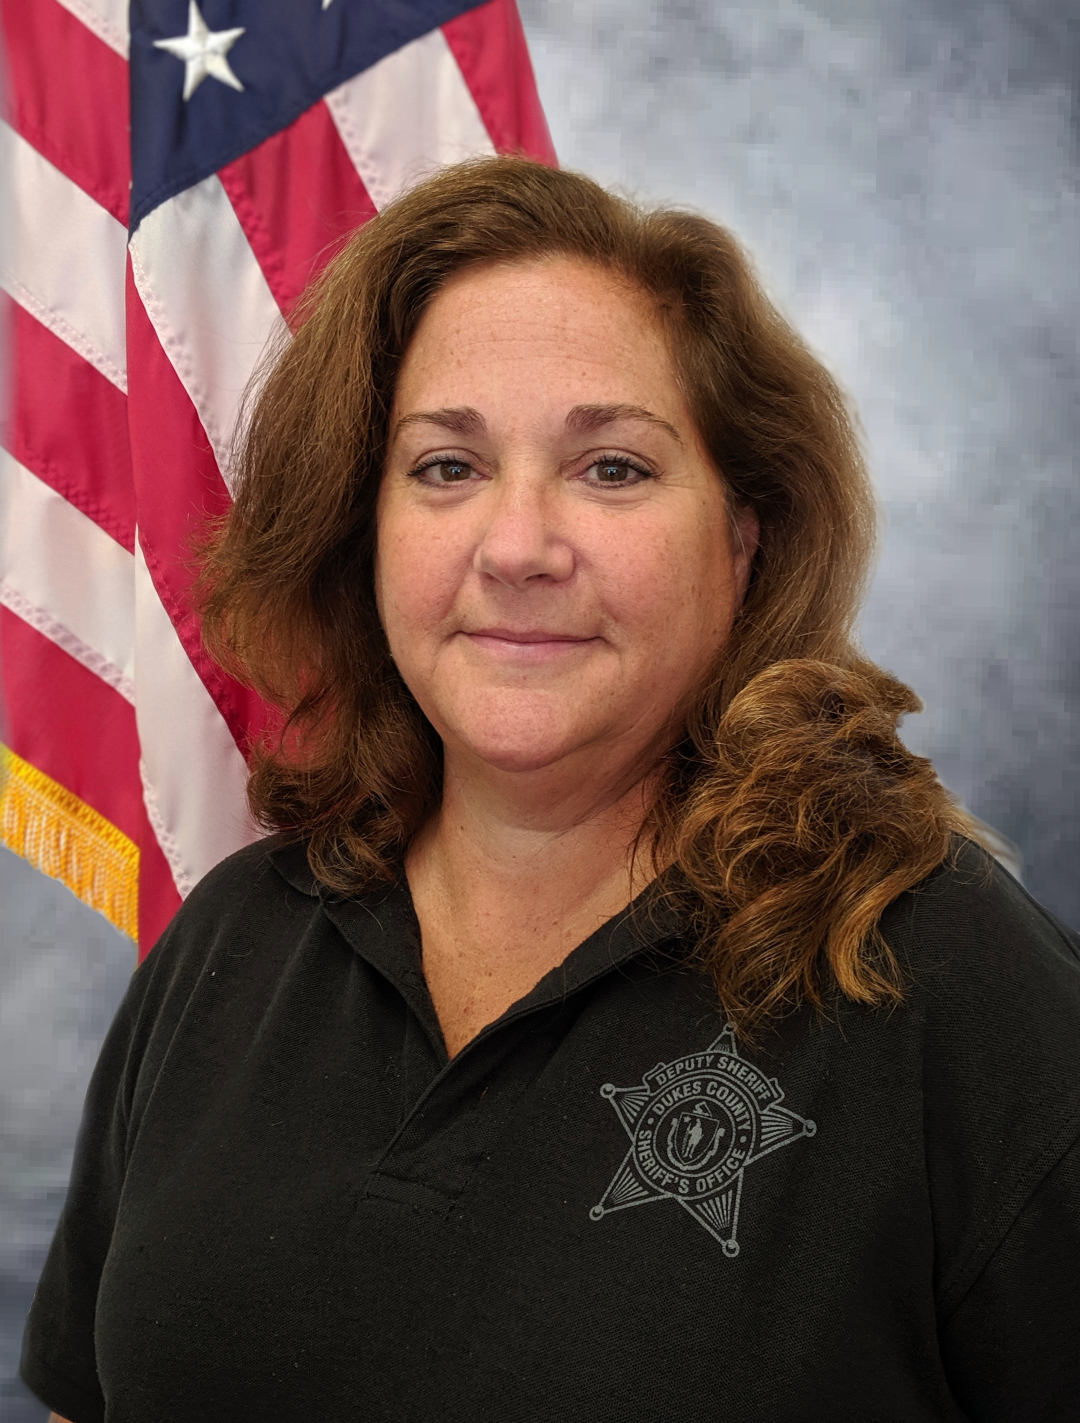 Major Susan Schofield, Dispatch Supervisor -